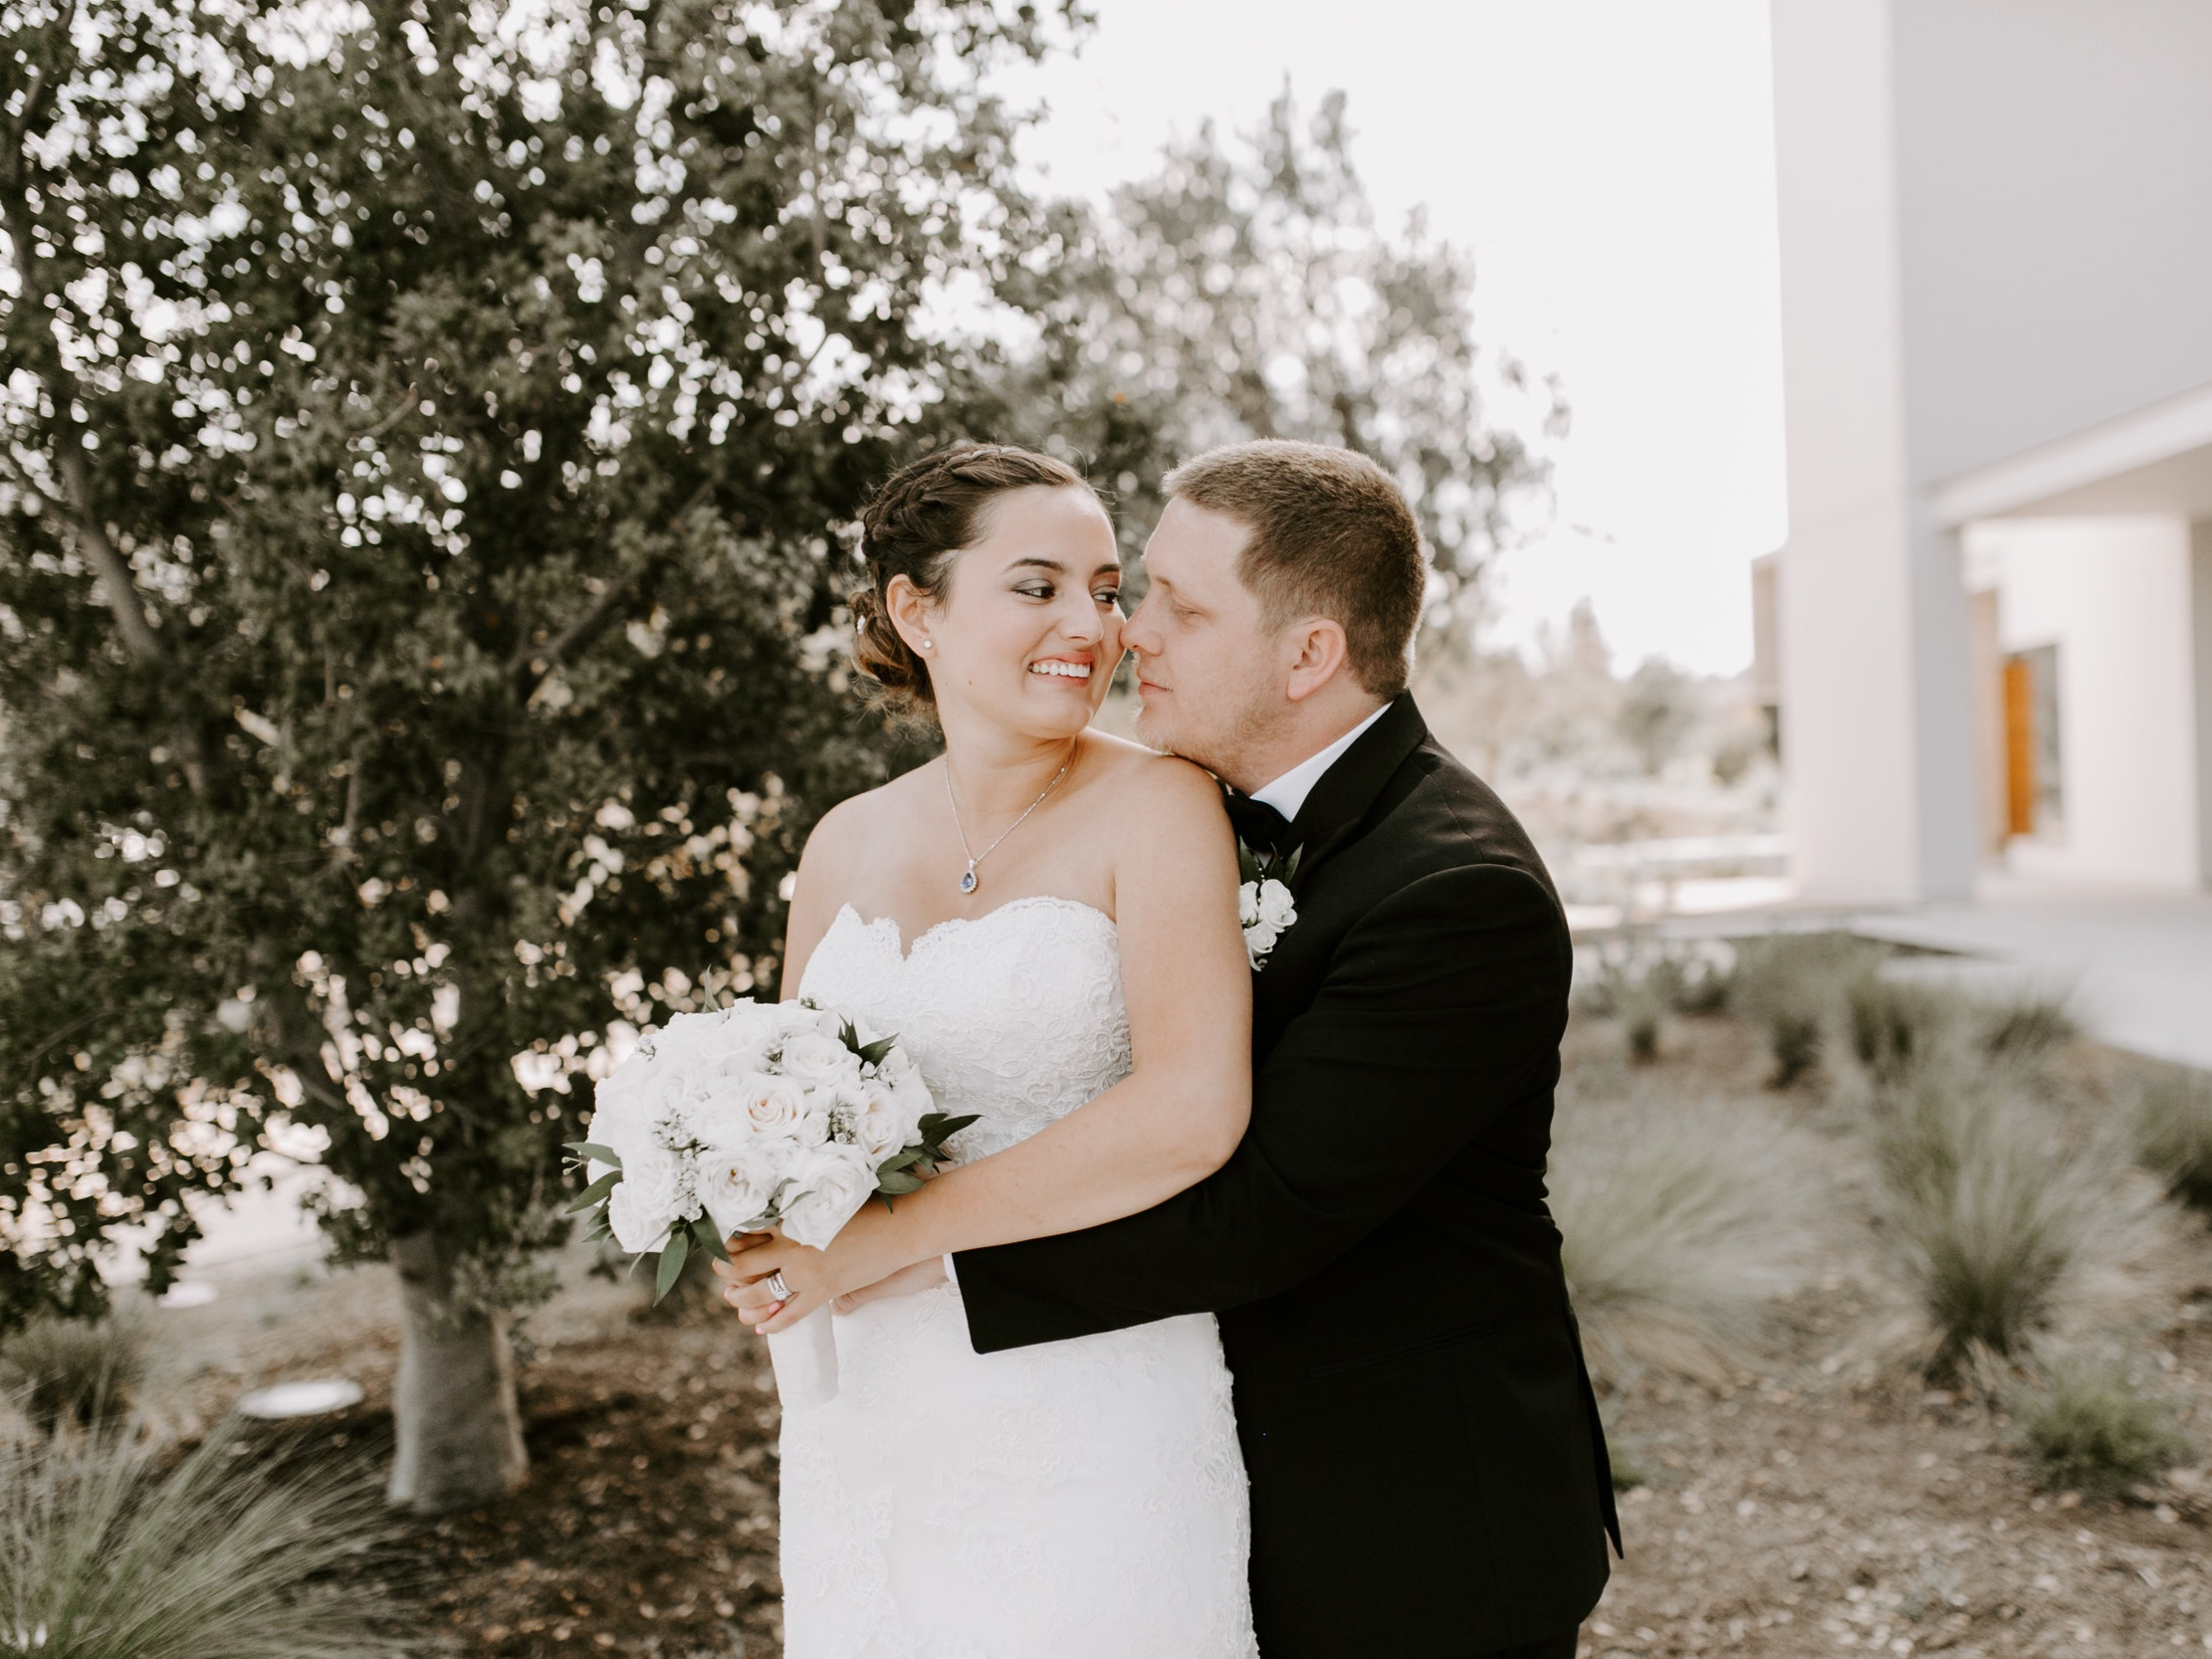 Matthew + Kaitlin - Let this be a place of new beginnings. Take what you have learned and apply it to something new. Things will be different here, but perhaps that can be a beautiful thing. Perhaps in all of these unknowns, you can will only learn something.